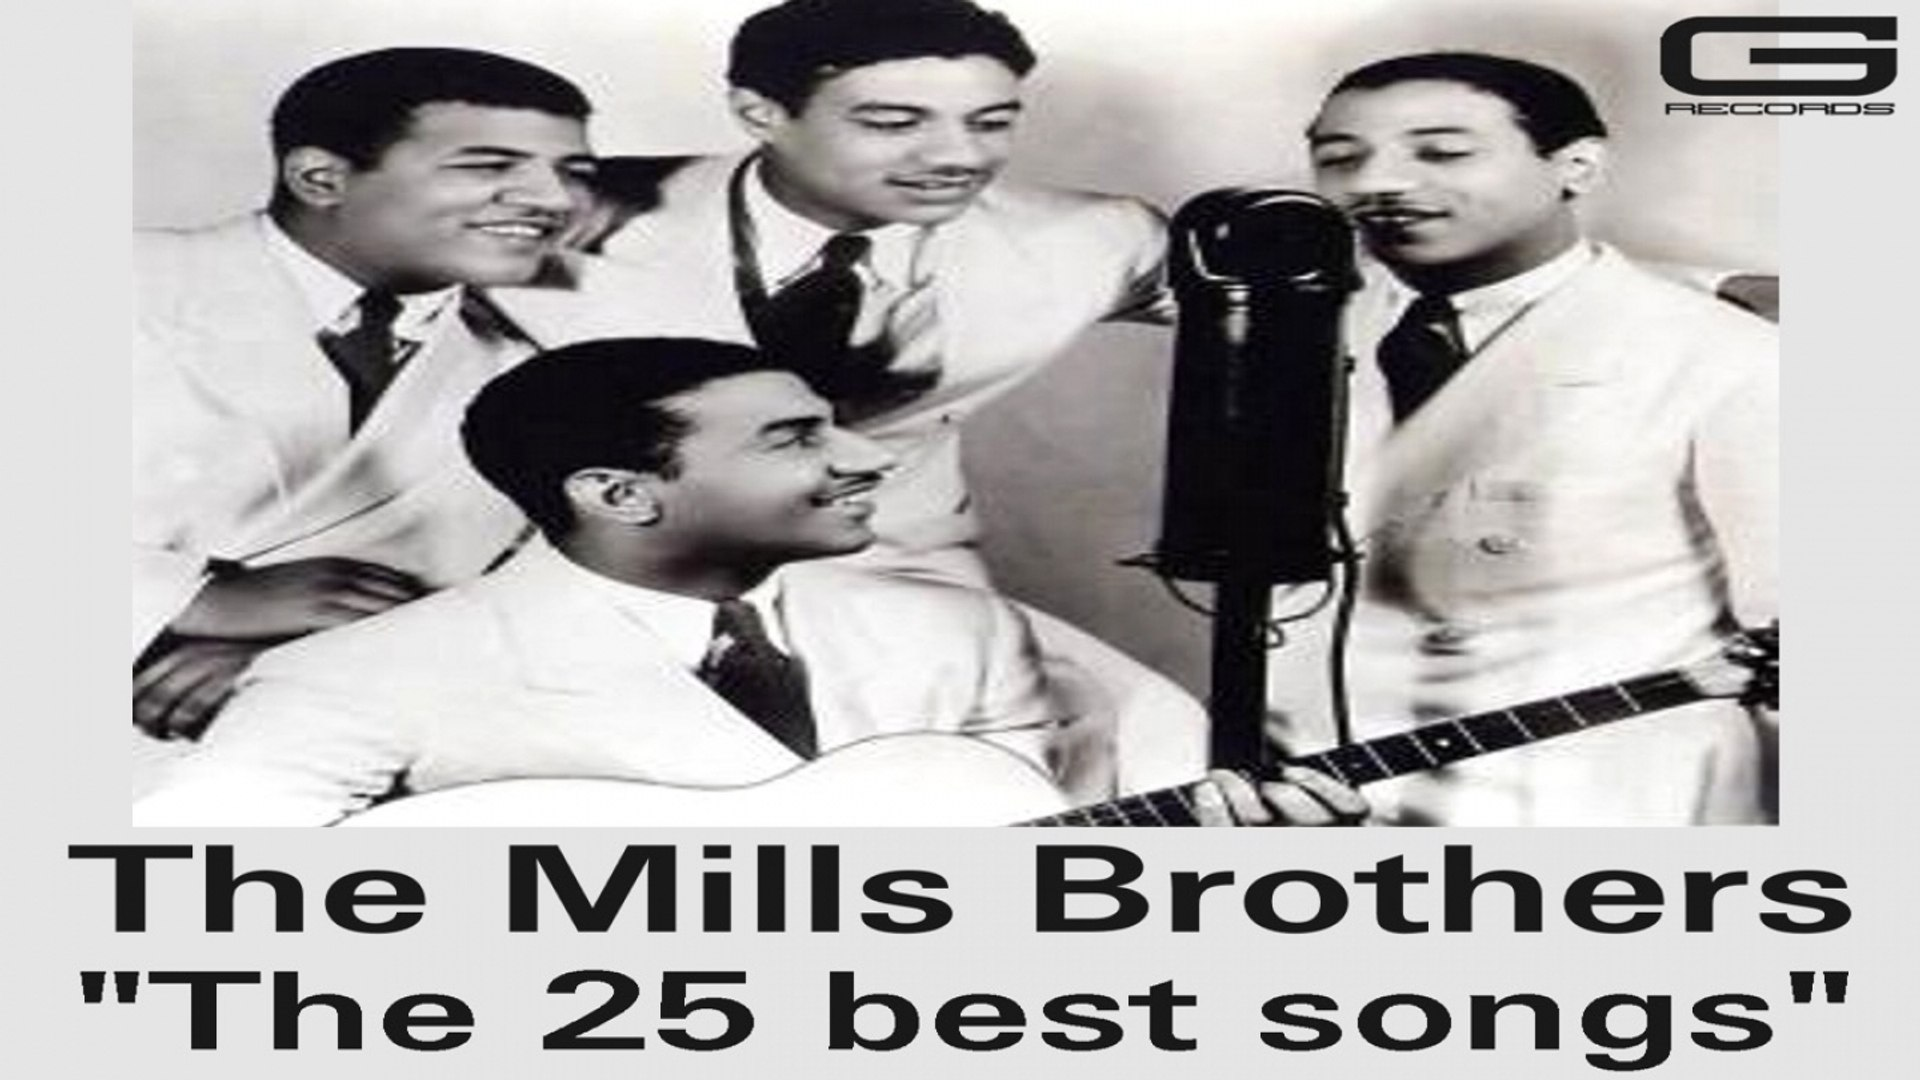 The Mills Brothers - Star Dust